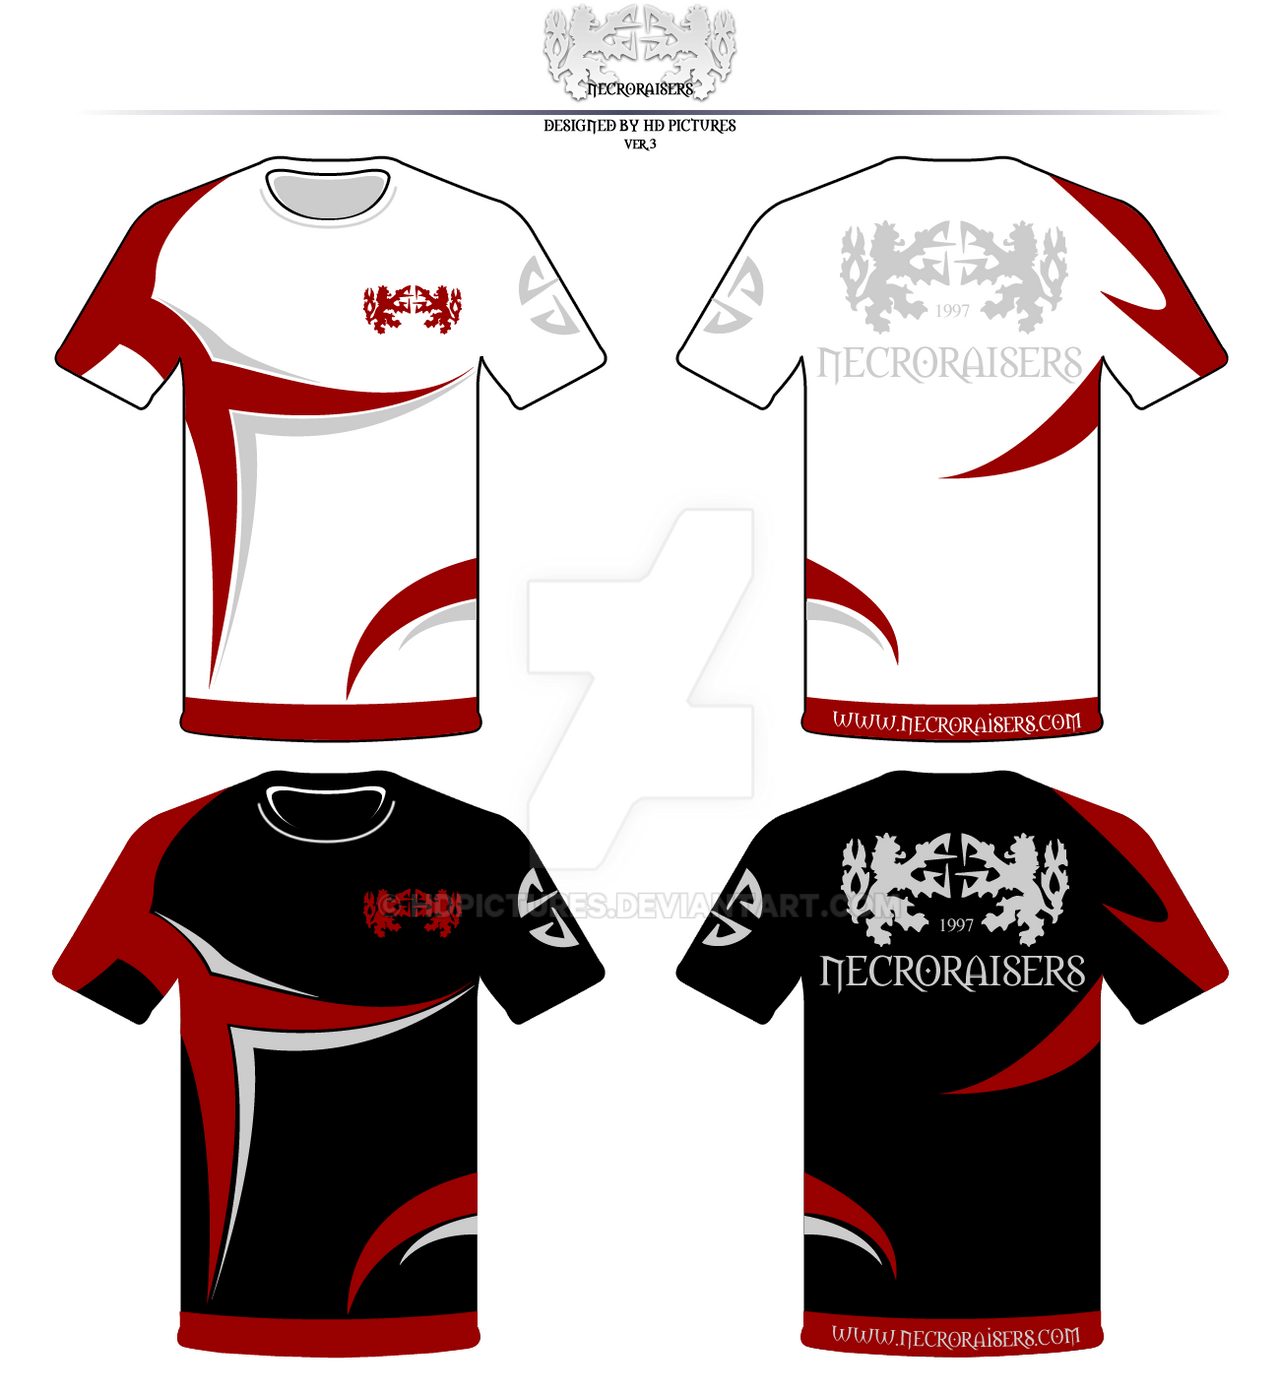 design team t shirts necroraisers final by hdpictures watch designs